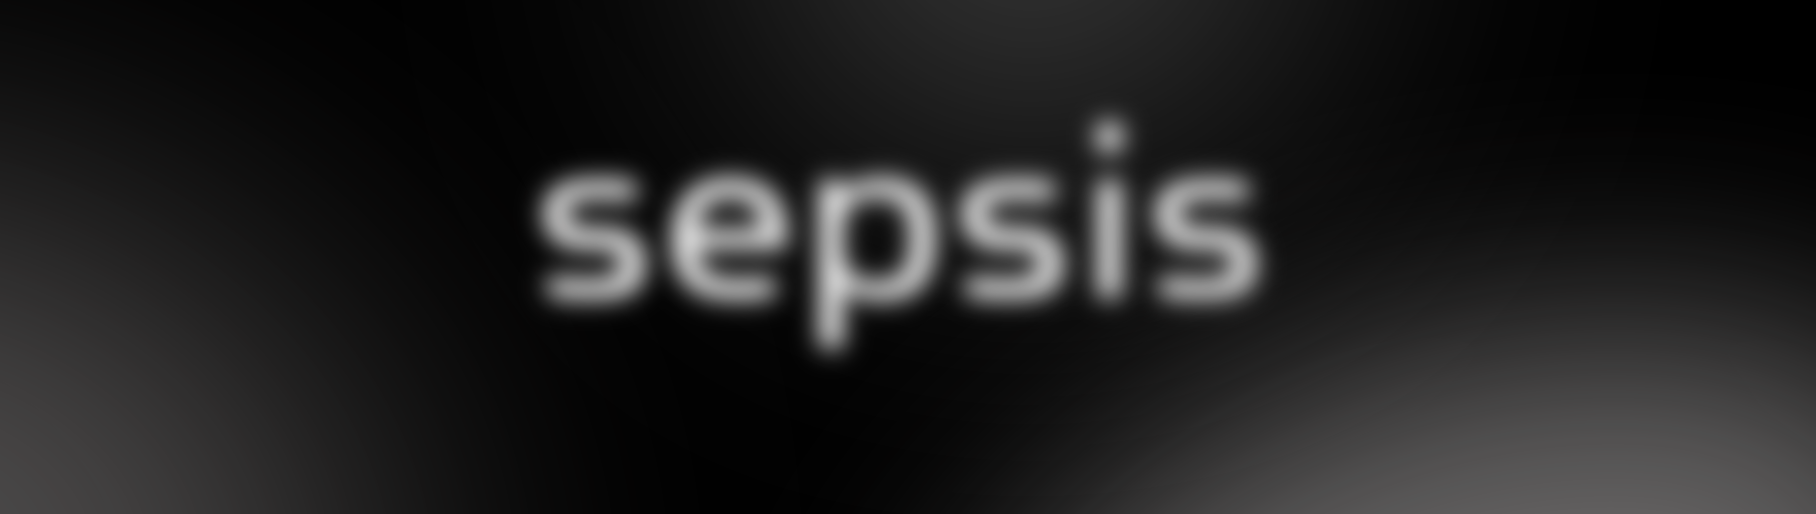 Sepsis Detection